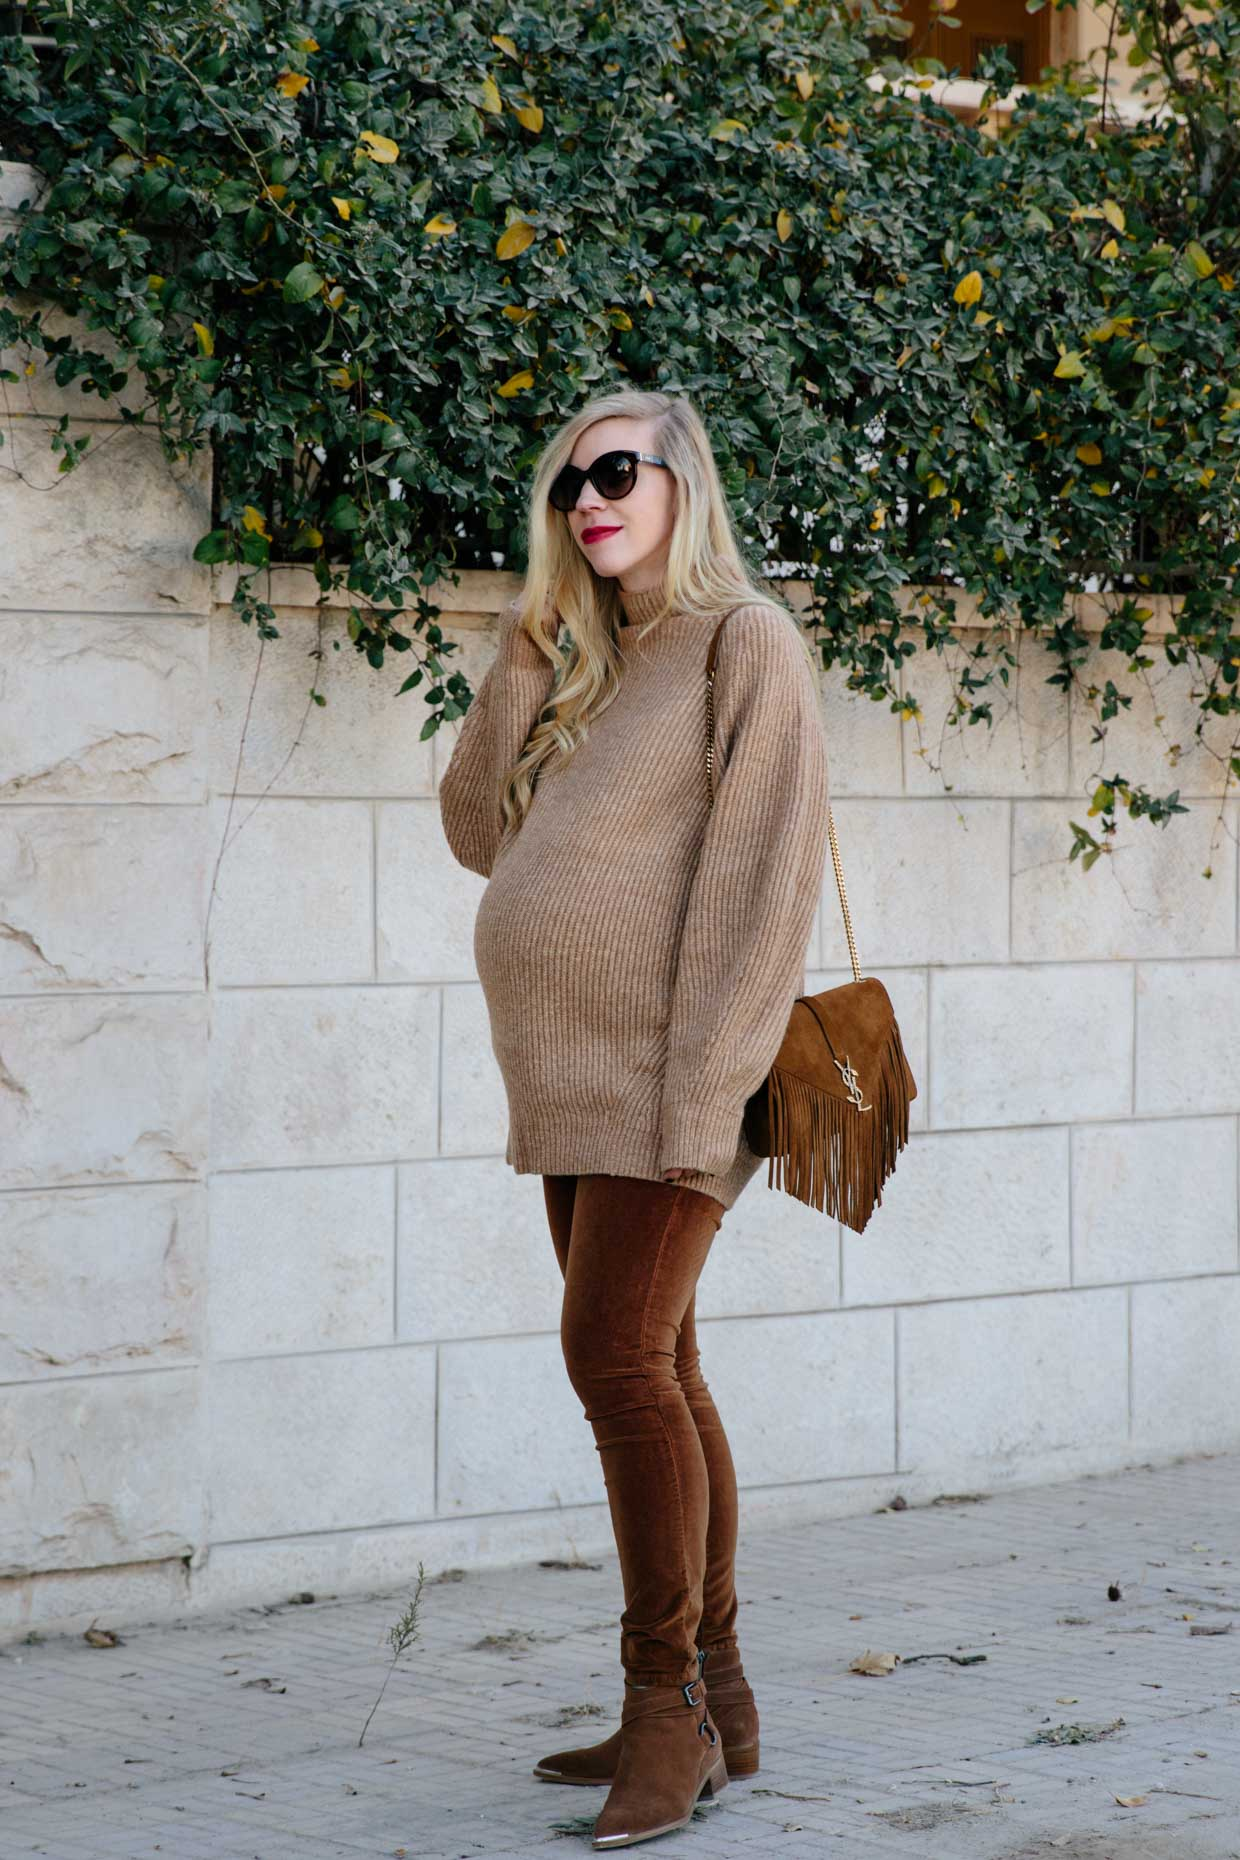 Meagan Brandon Fashion Blogger Of Meagan S Moda Wears All Camel Monochromatic Outfit With Saint Laurent Tan Suede Fringe Bag All Camel Color Outfit For Fall Frame Velvet Camel Pants Meagan S Moda